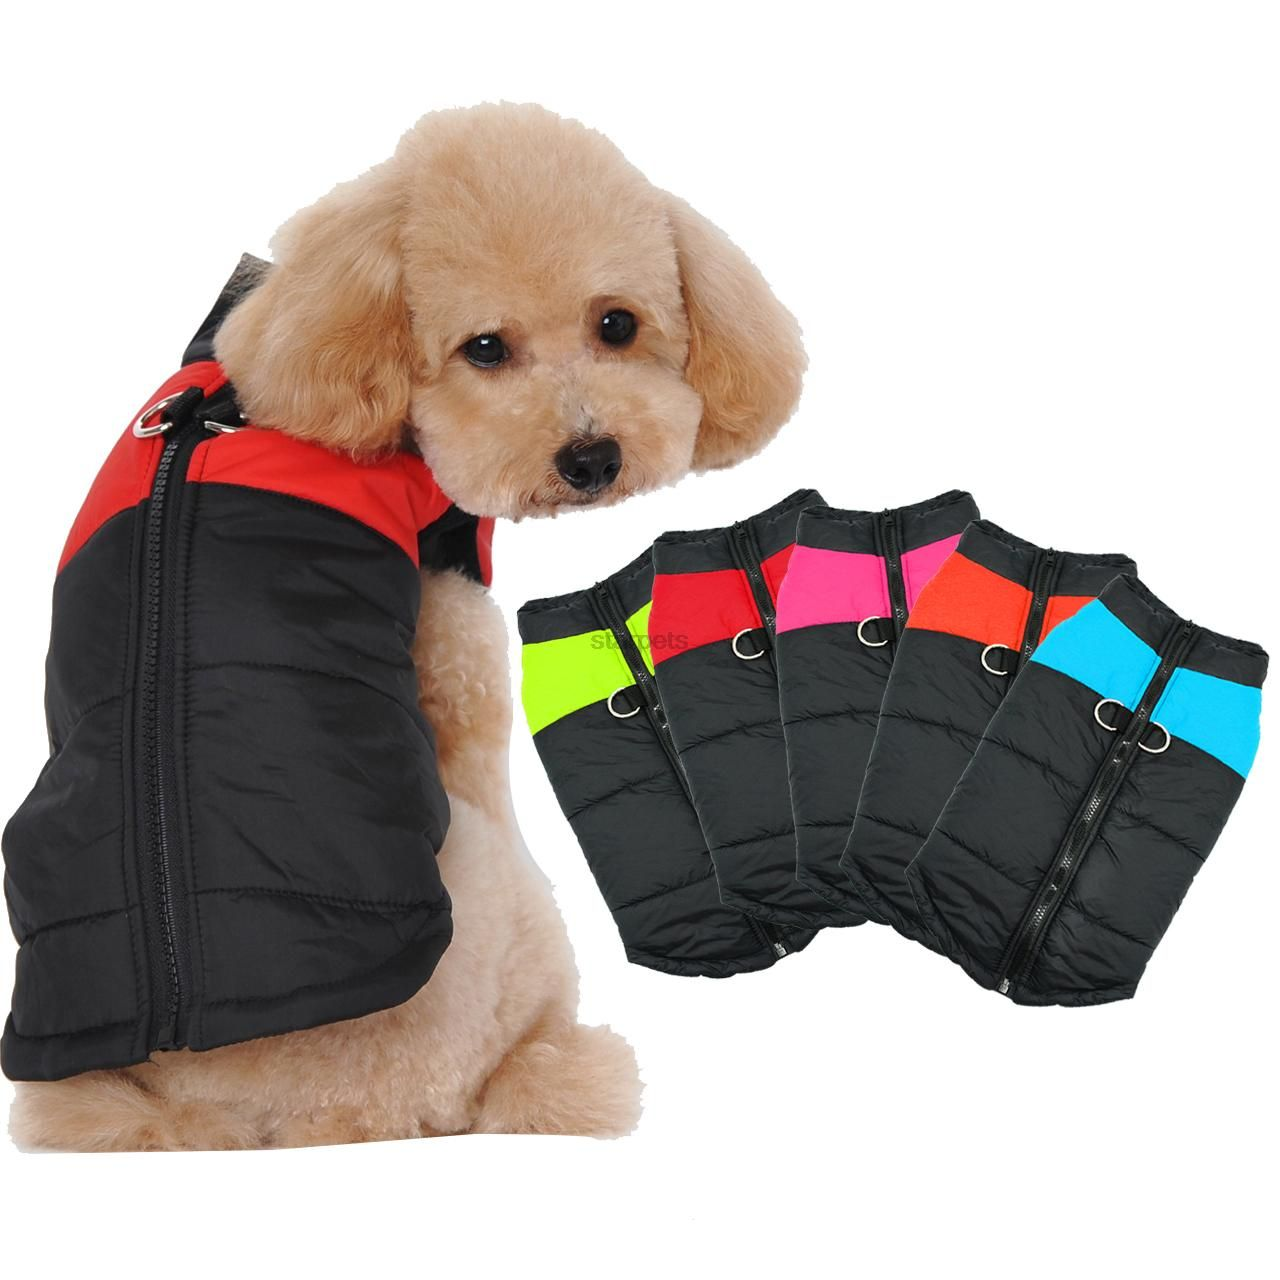 $7-$14---Dog Clothes For Small Dogs Winter Puppy Chihuahua Pet Dog ...